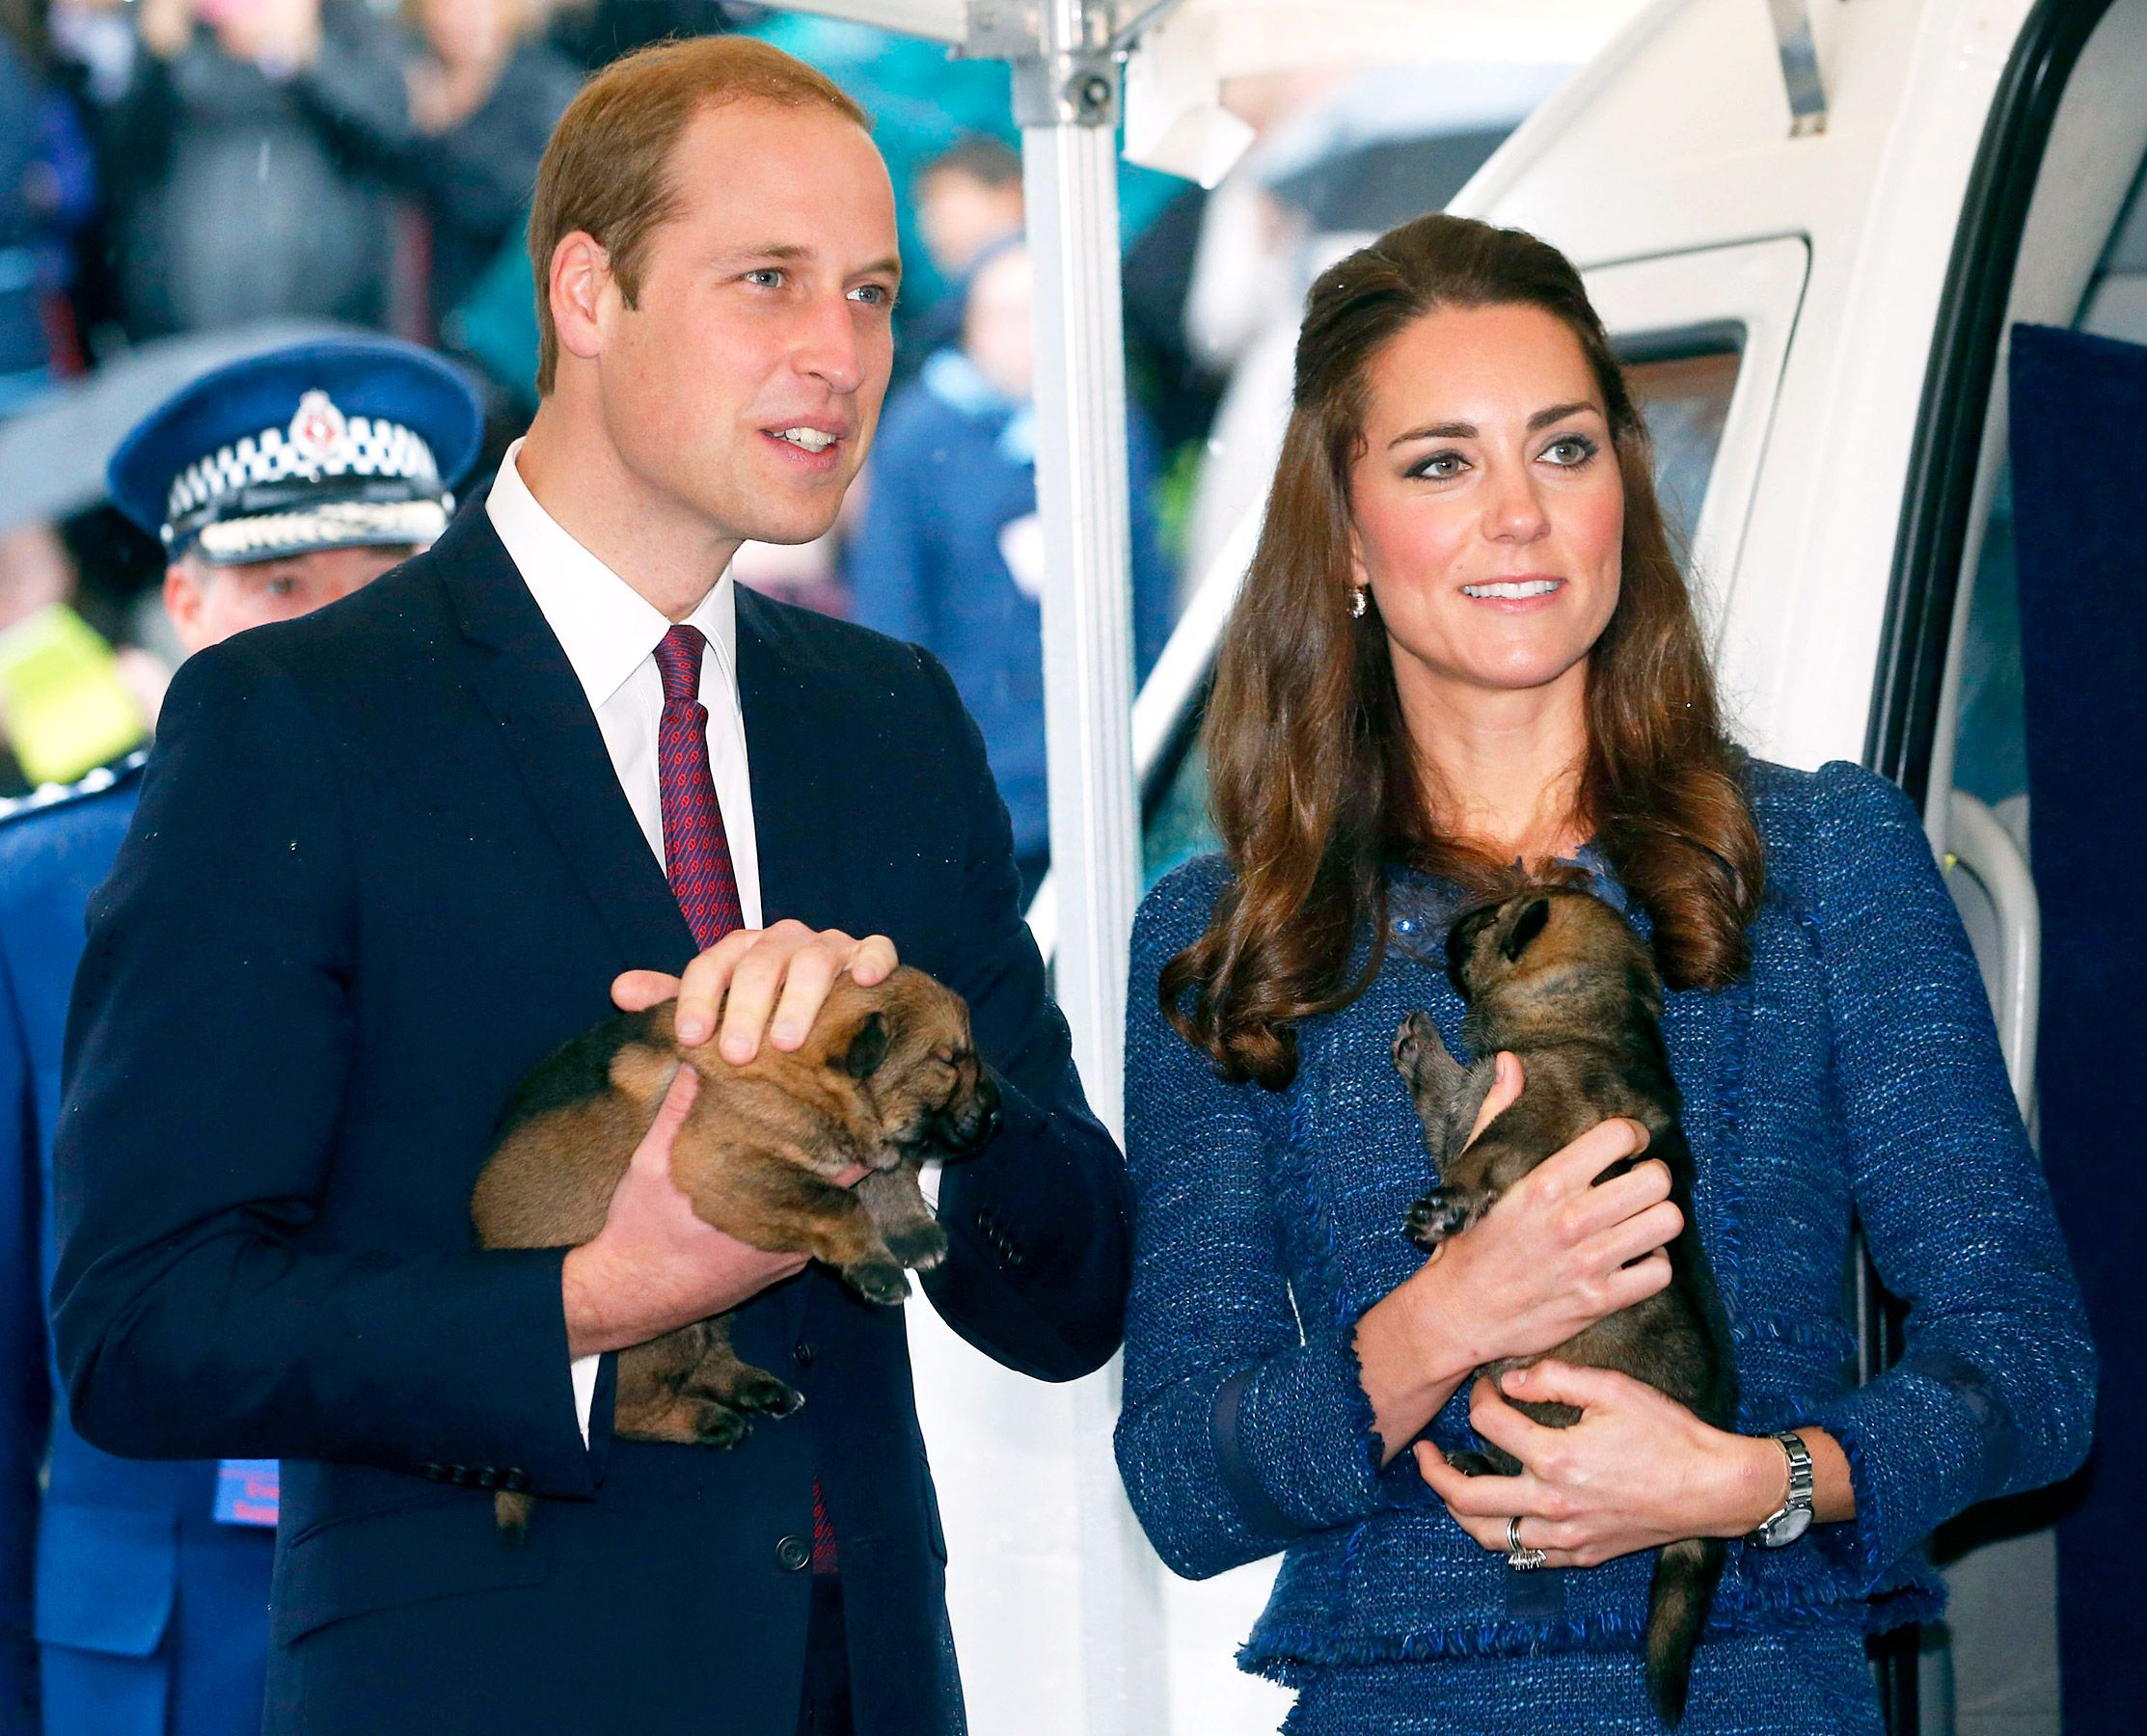 Kate Middleton Prince William Pose With Puppies In New